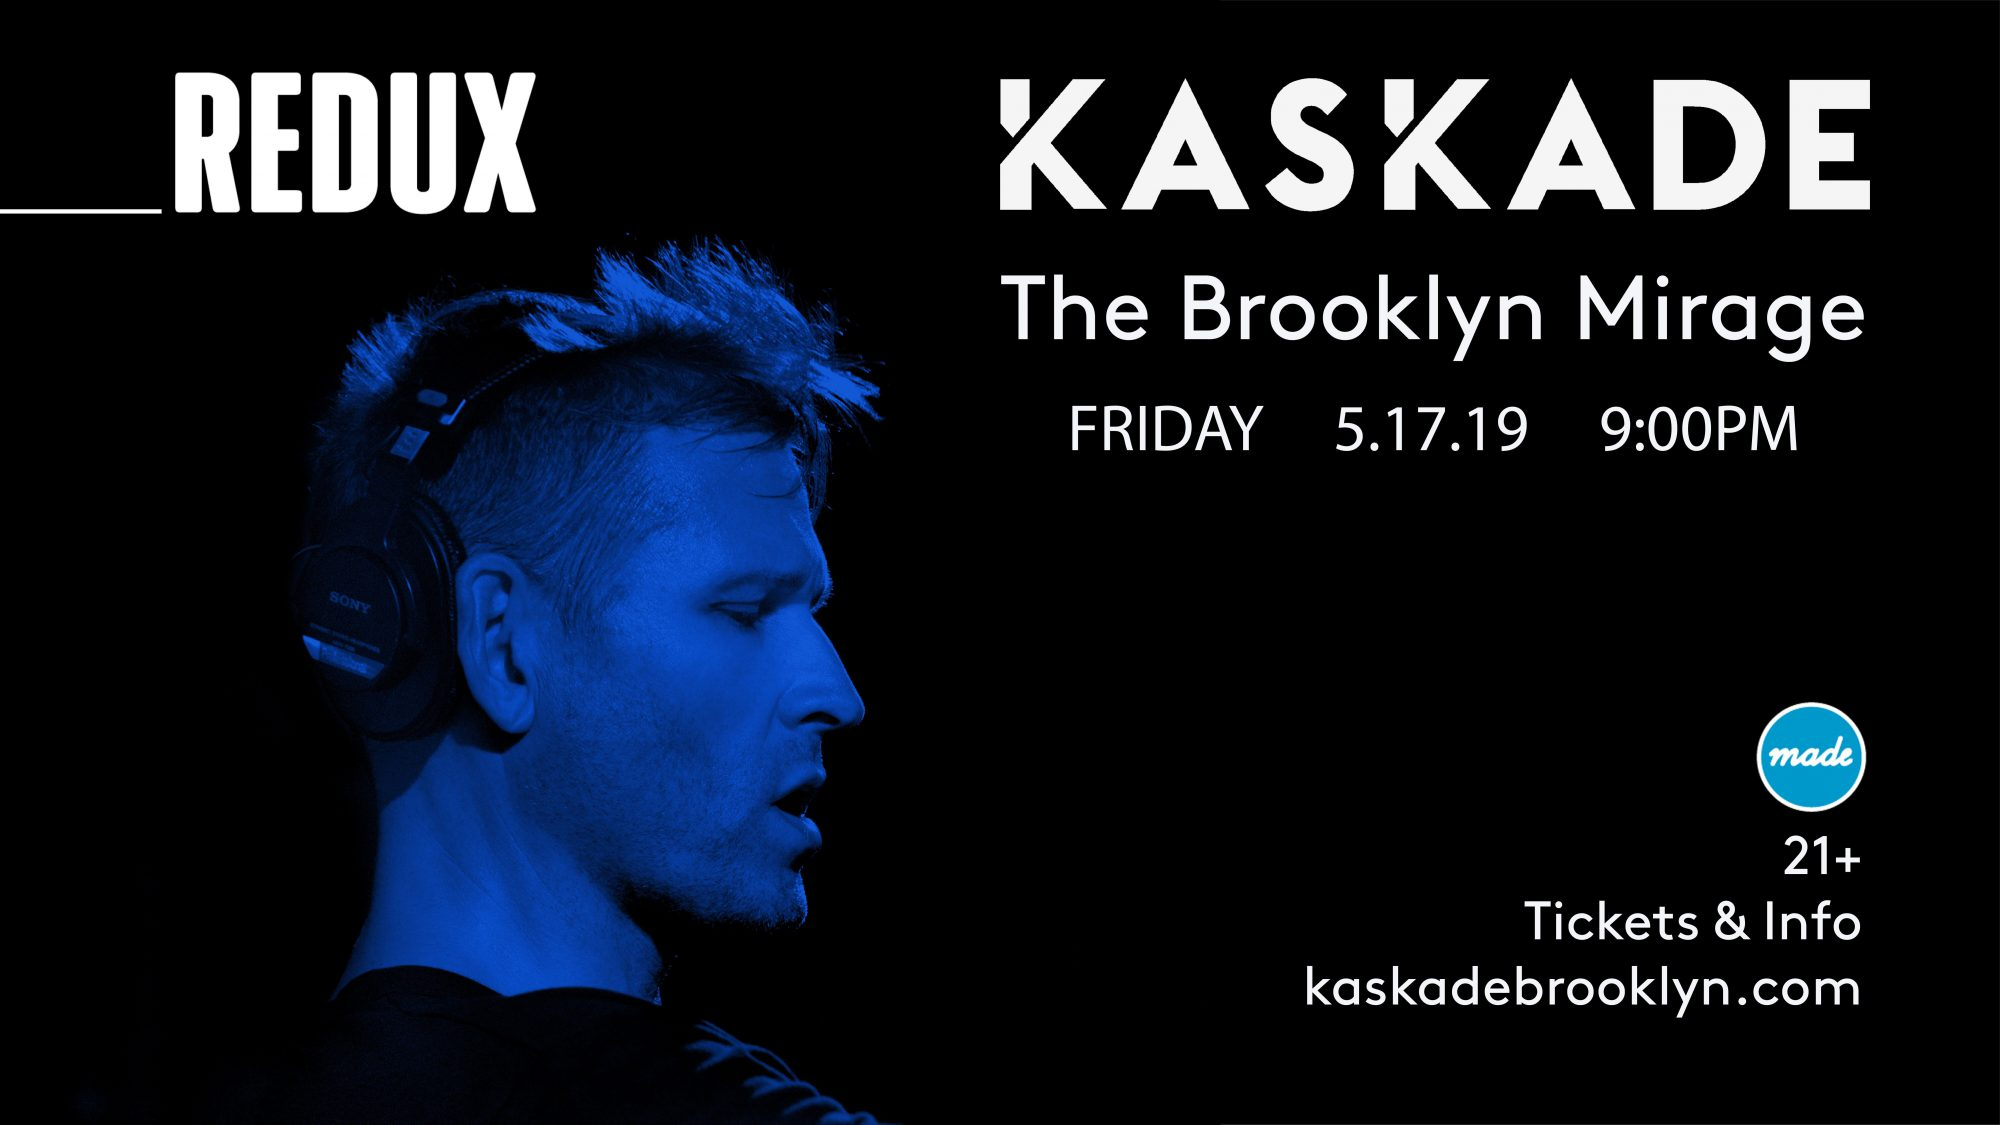 Kaskade Redux at The Brooklyn Mirage Flyer